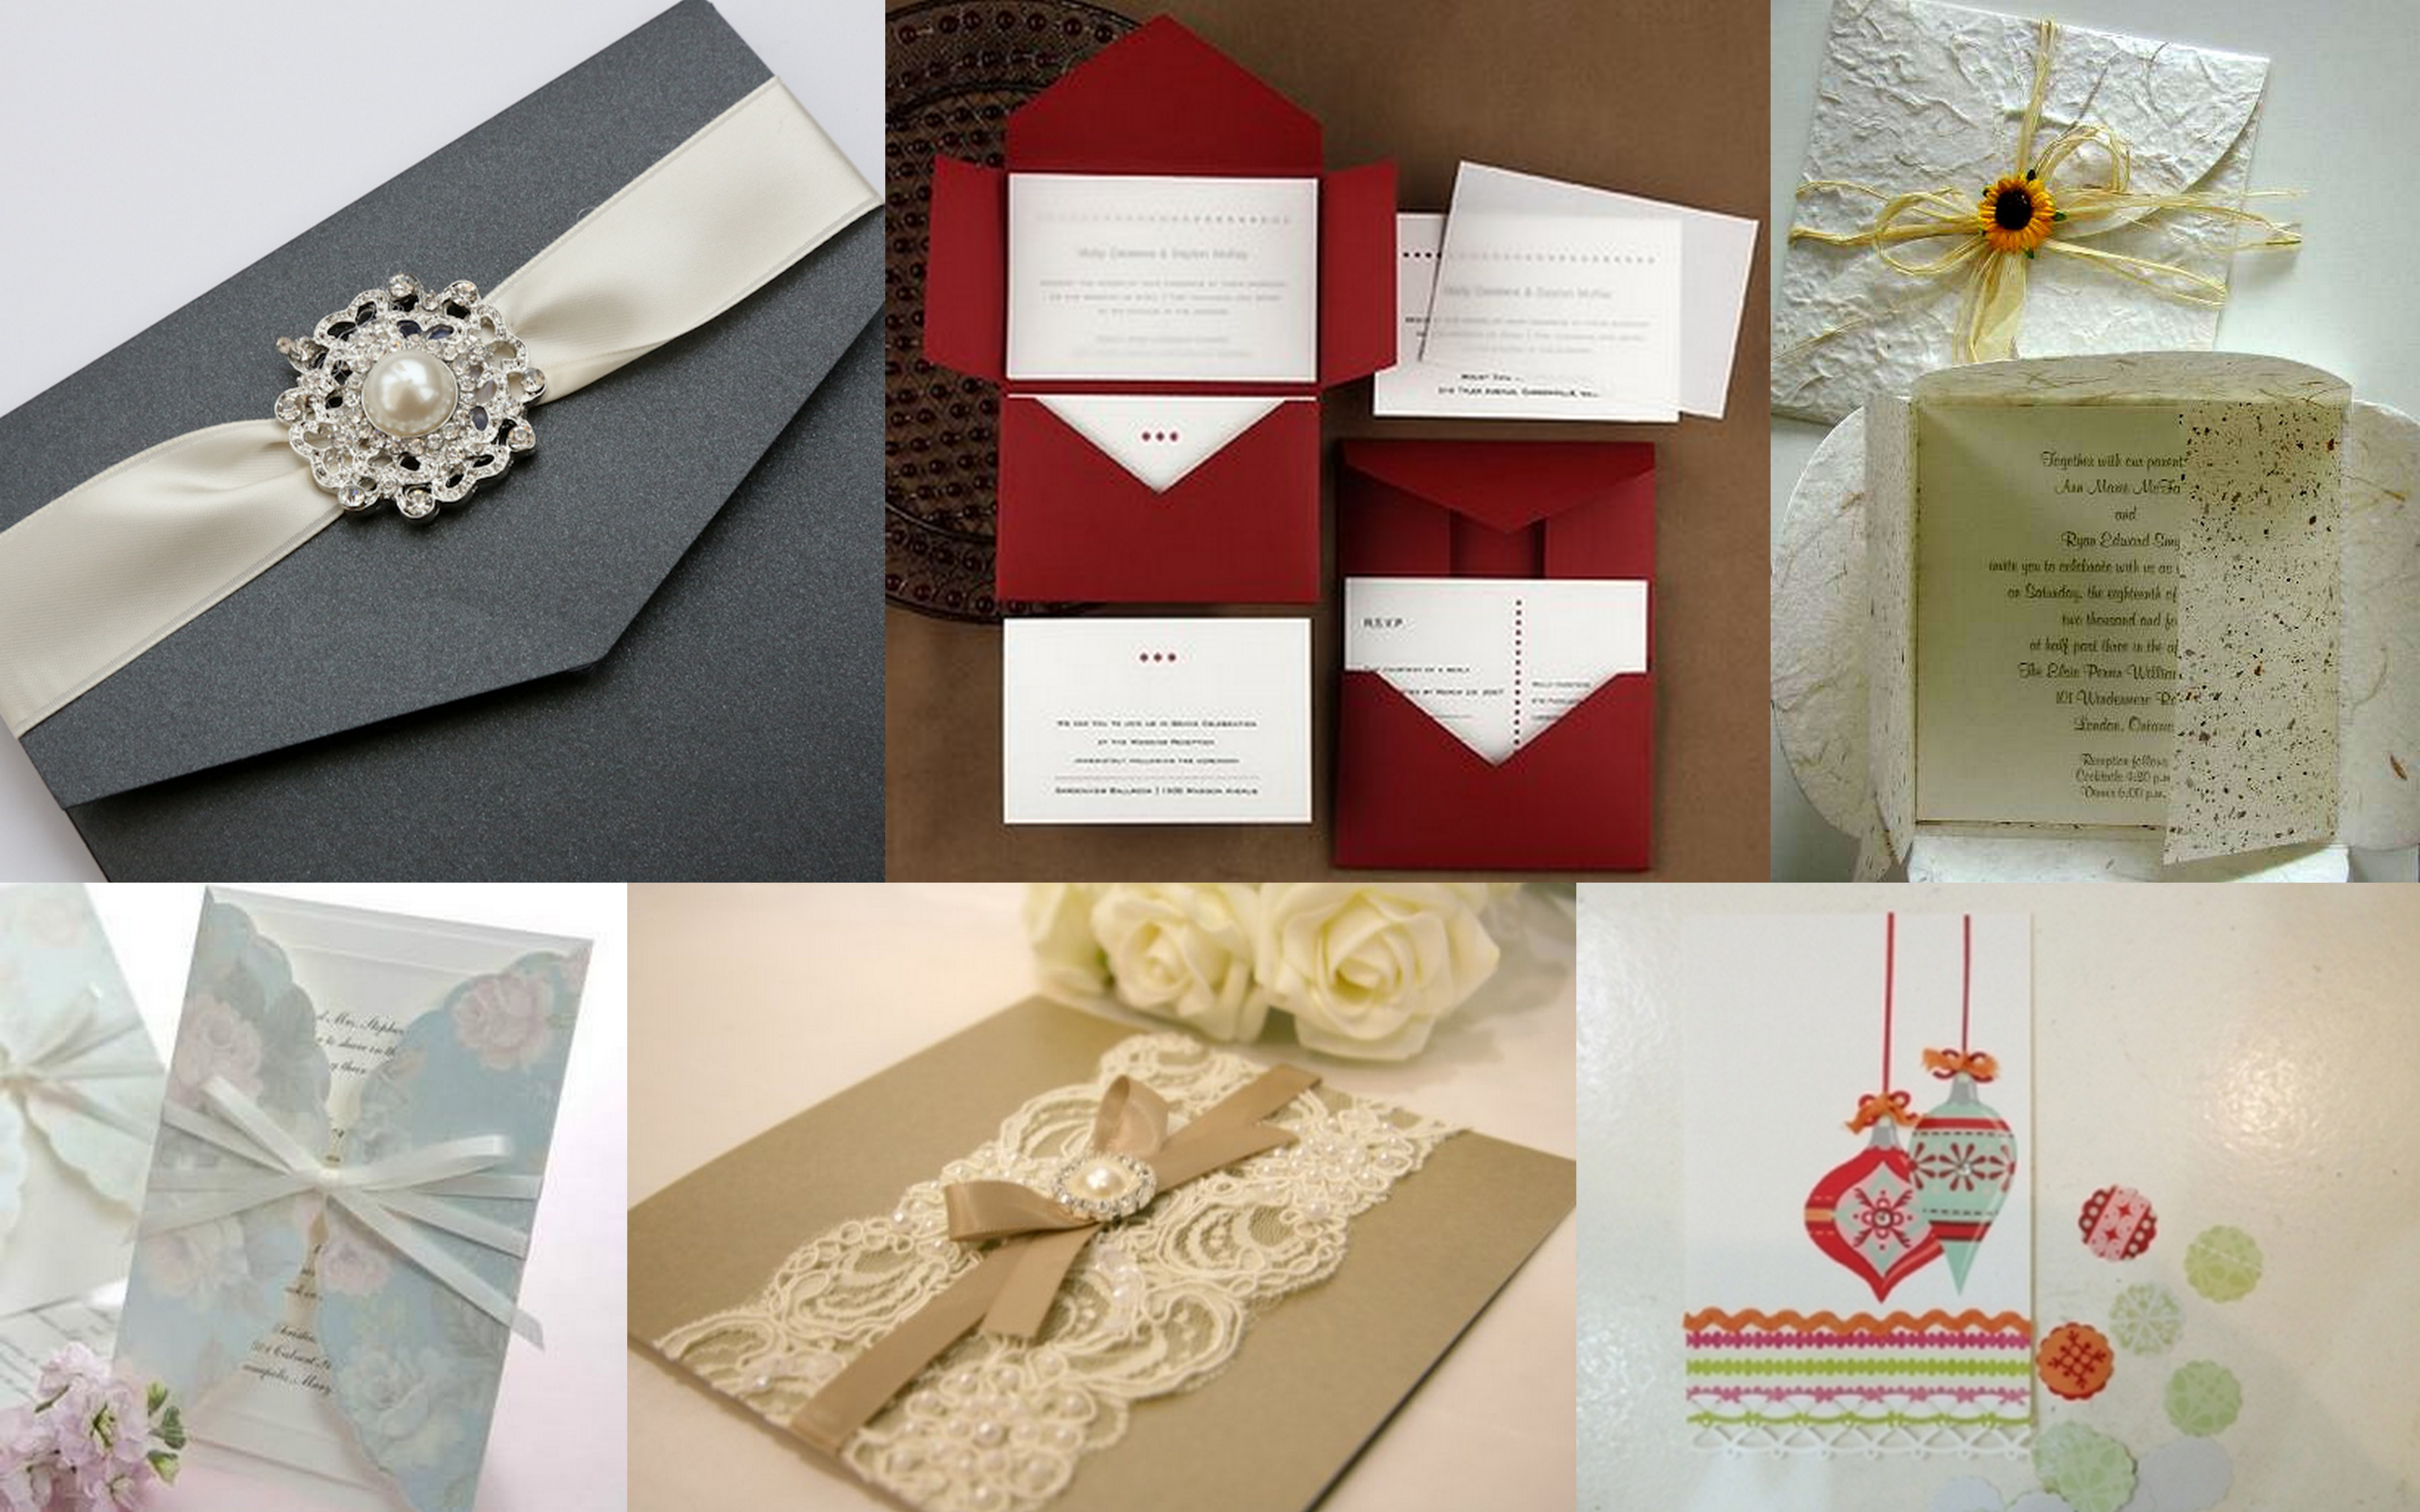 Handmade Wedding Card Designs Find This Pin And More On Card Ideas